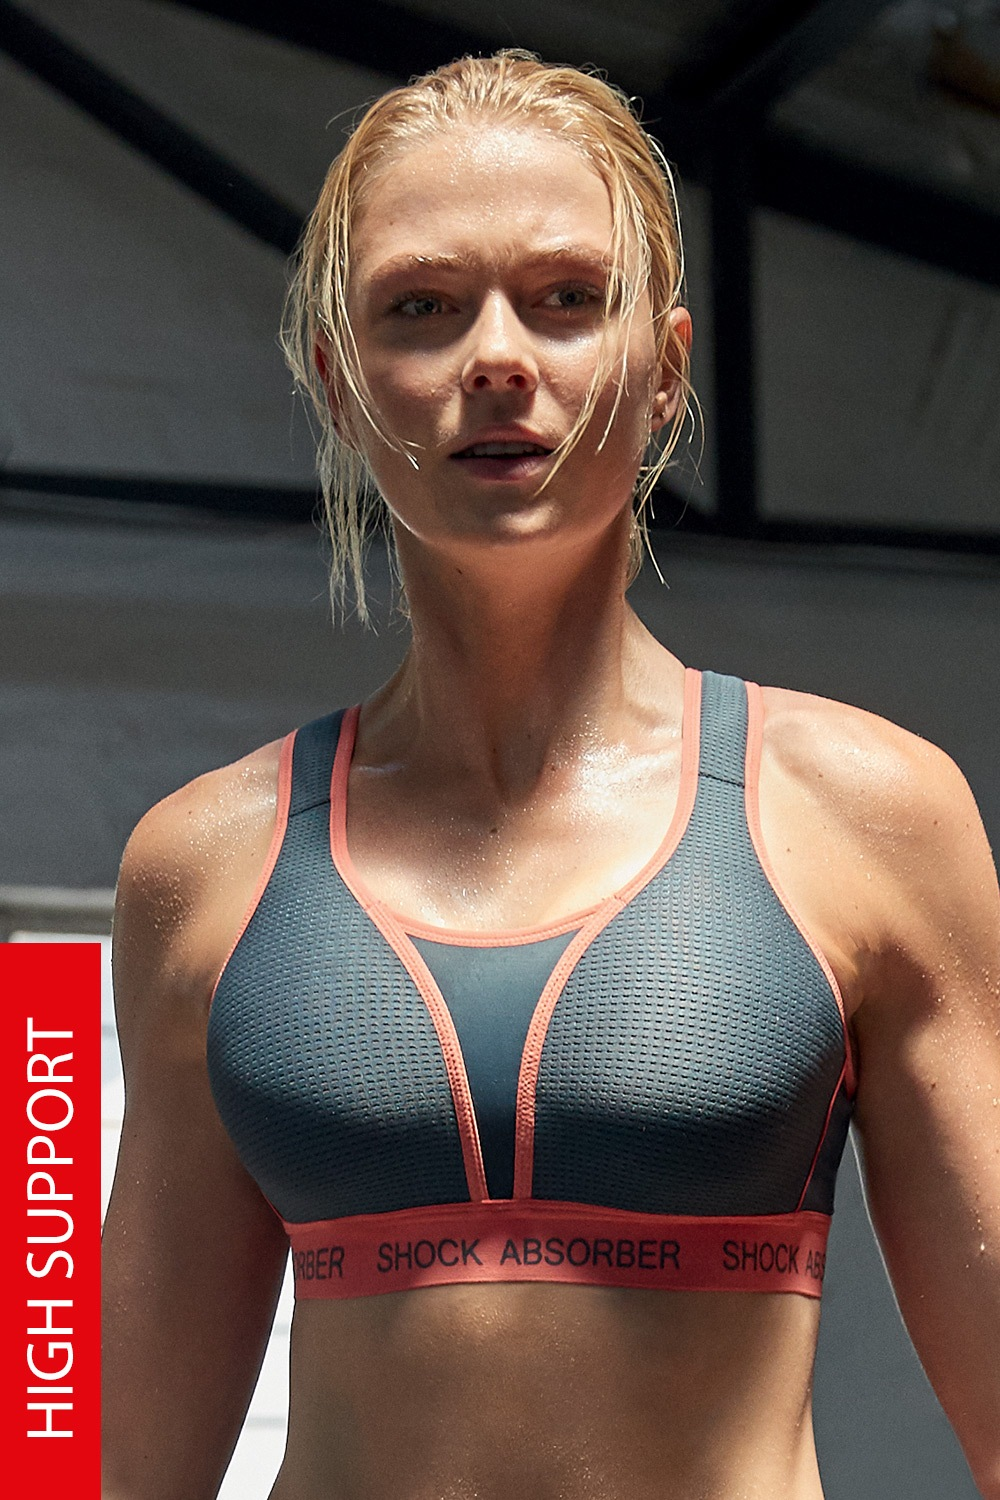 Sutien sport Shock Absorber Ultemate Run Bra Padded de la Shock absorber